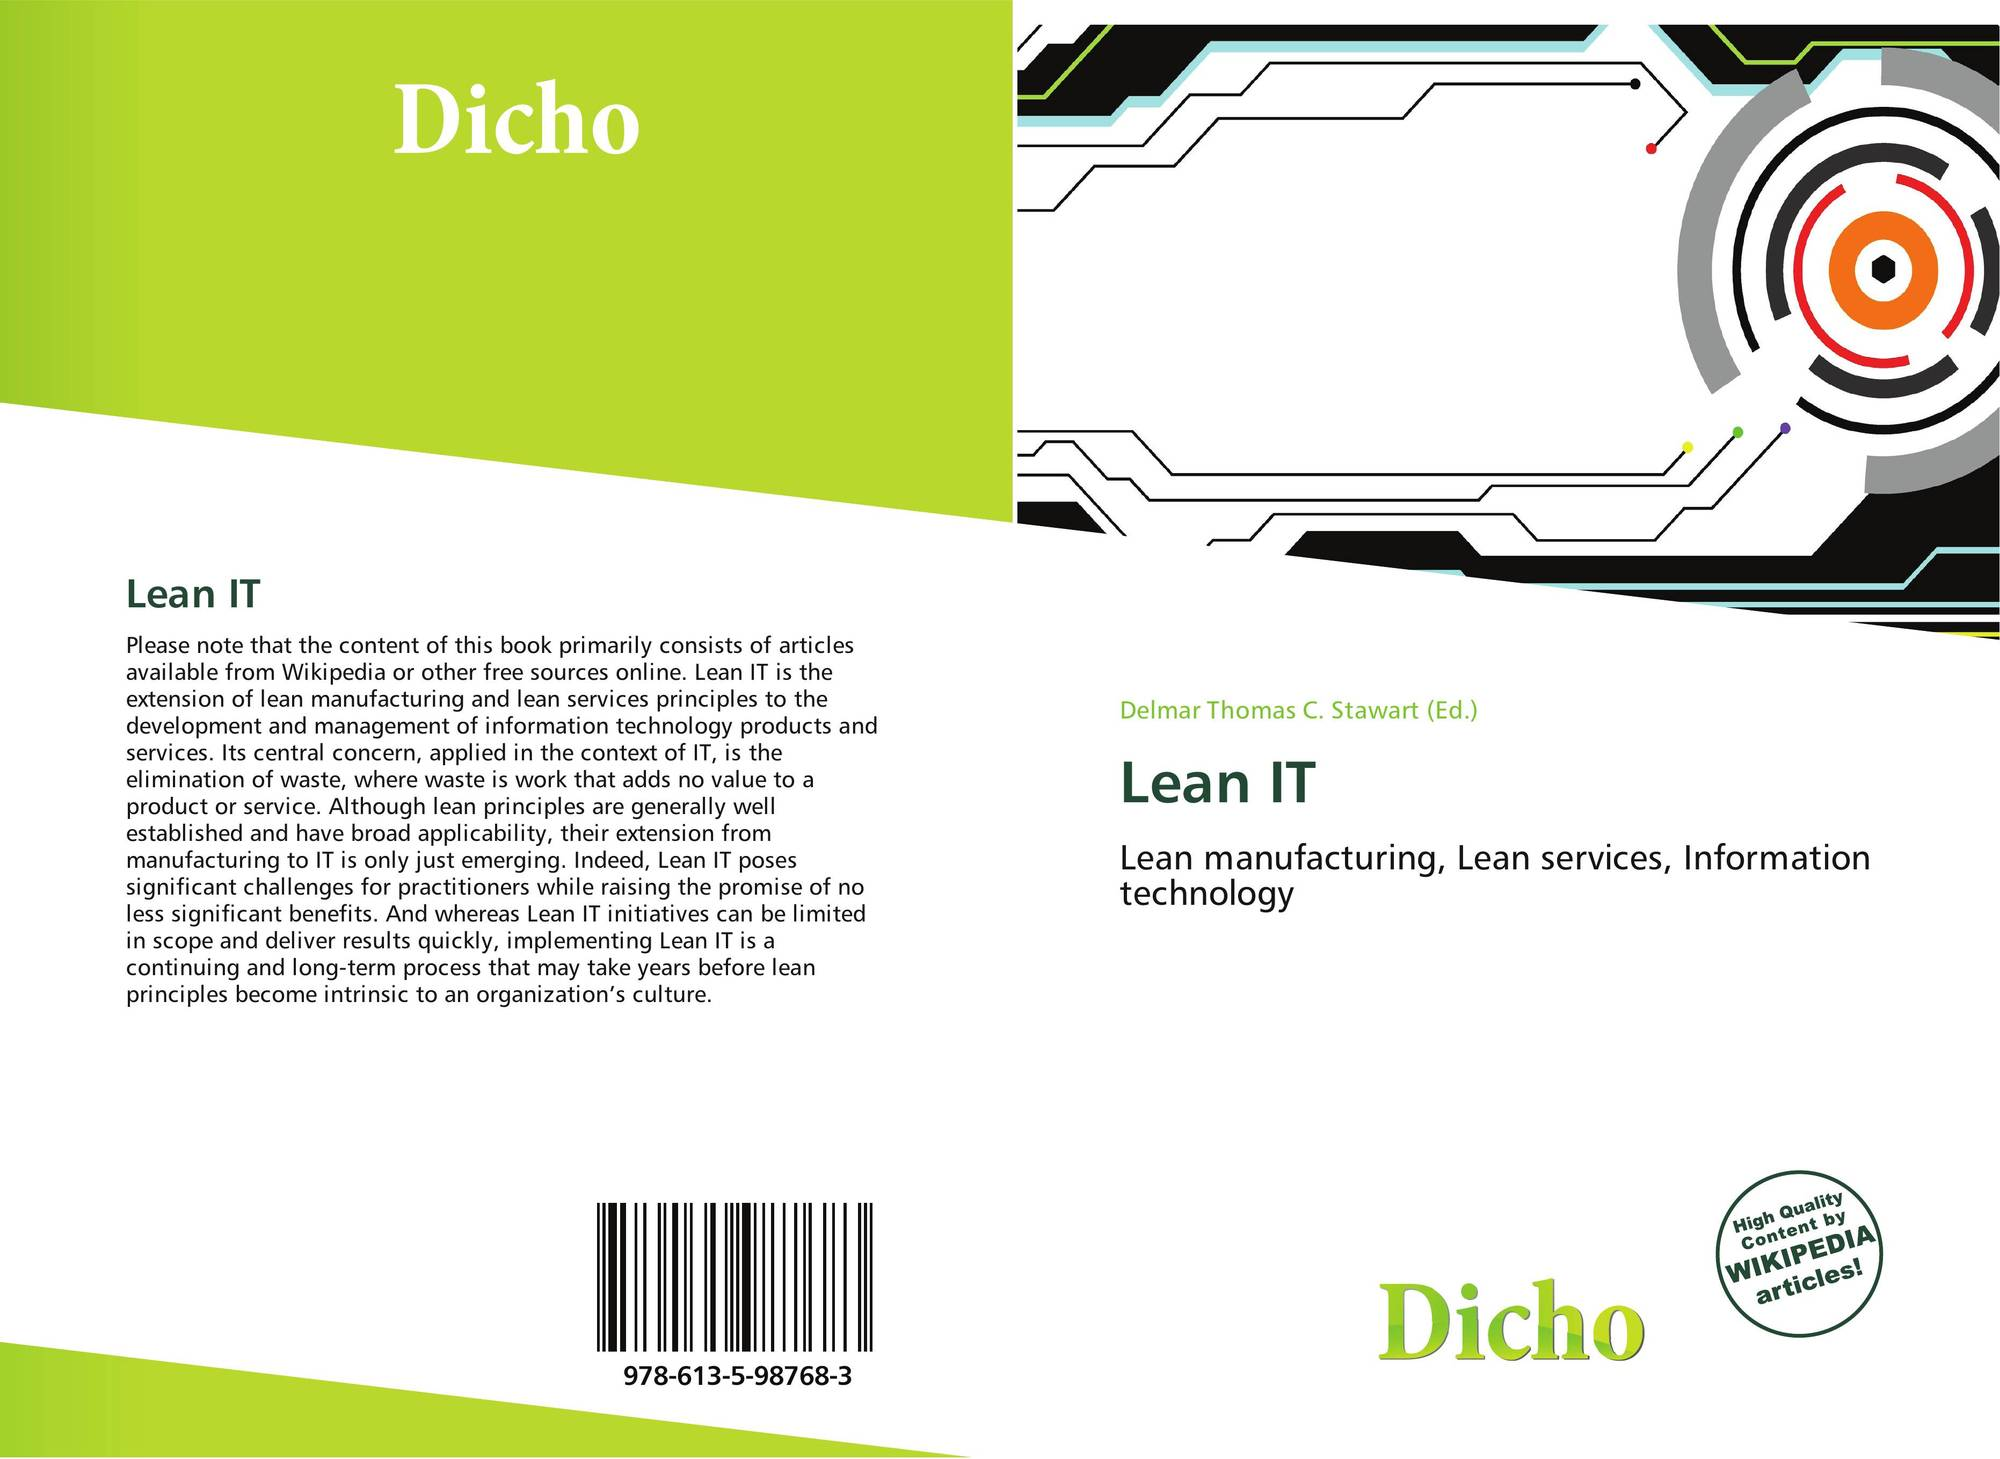 Lean construction wikipedia - Portada Del Libro De Lean It